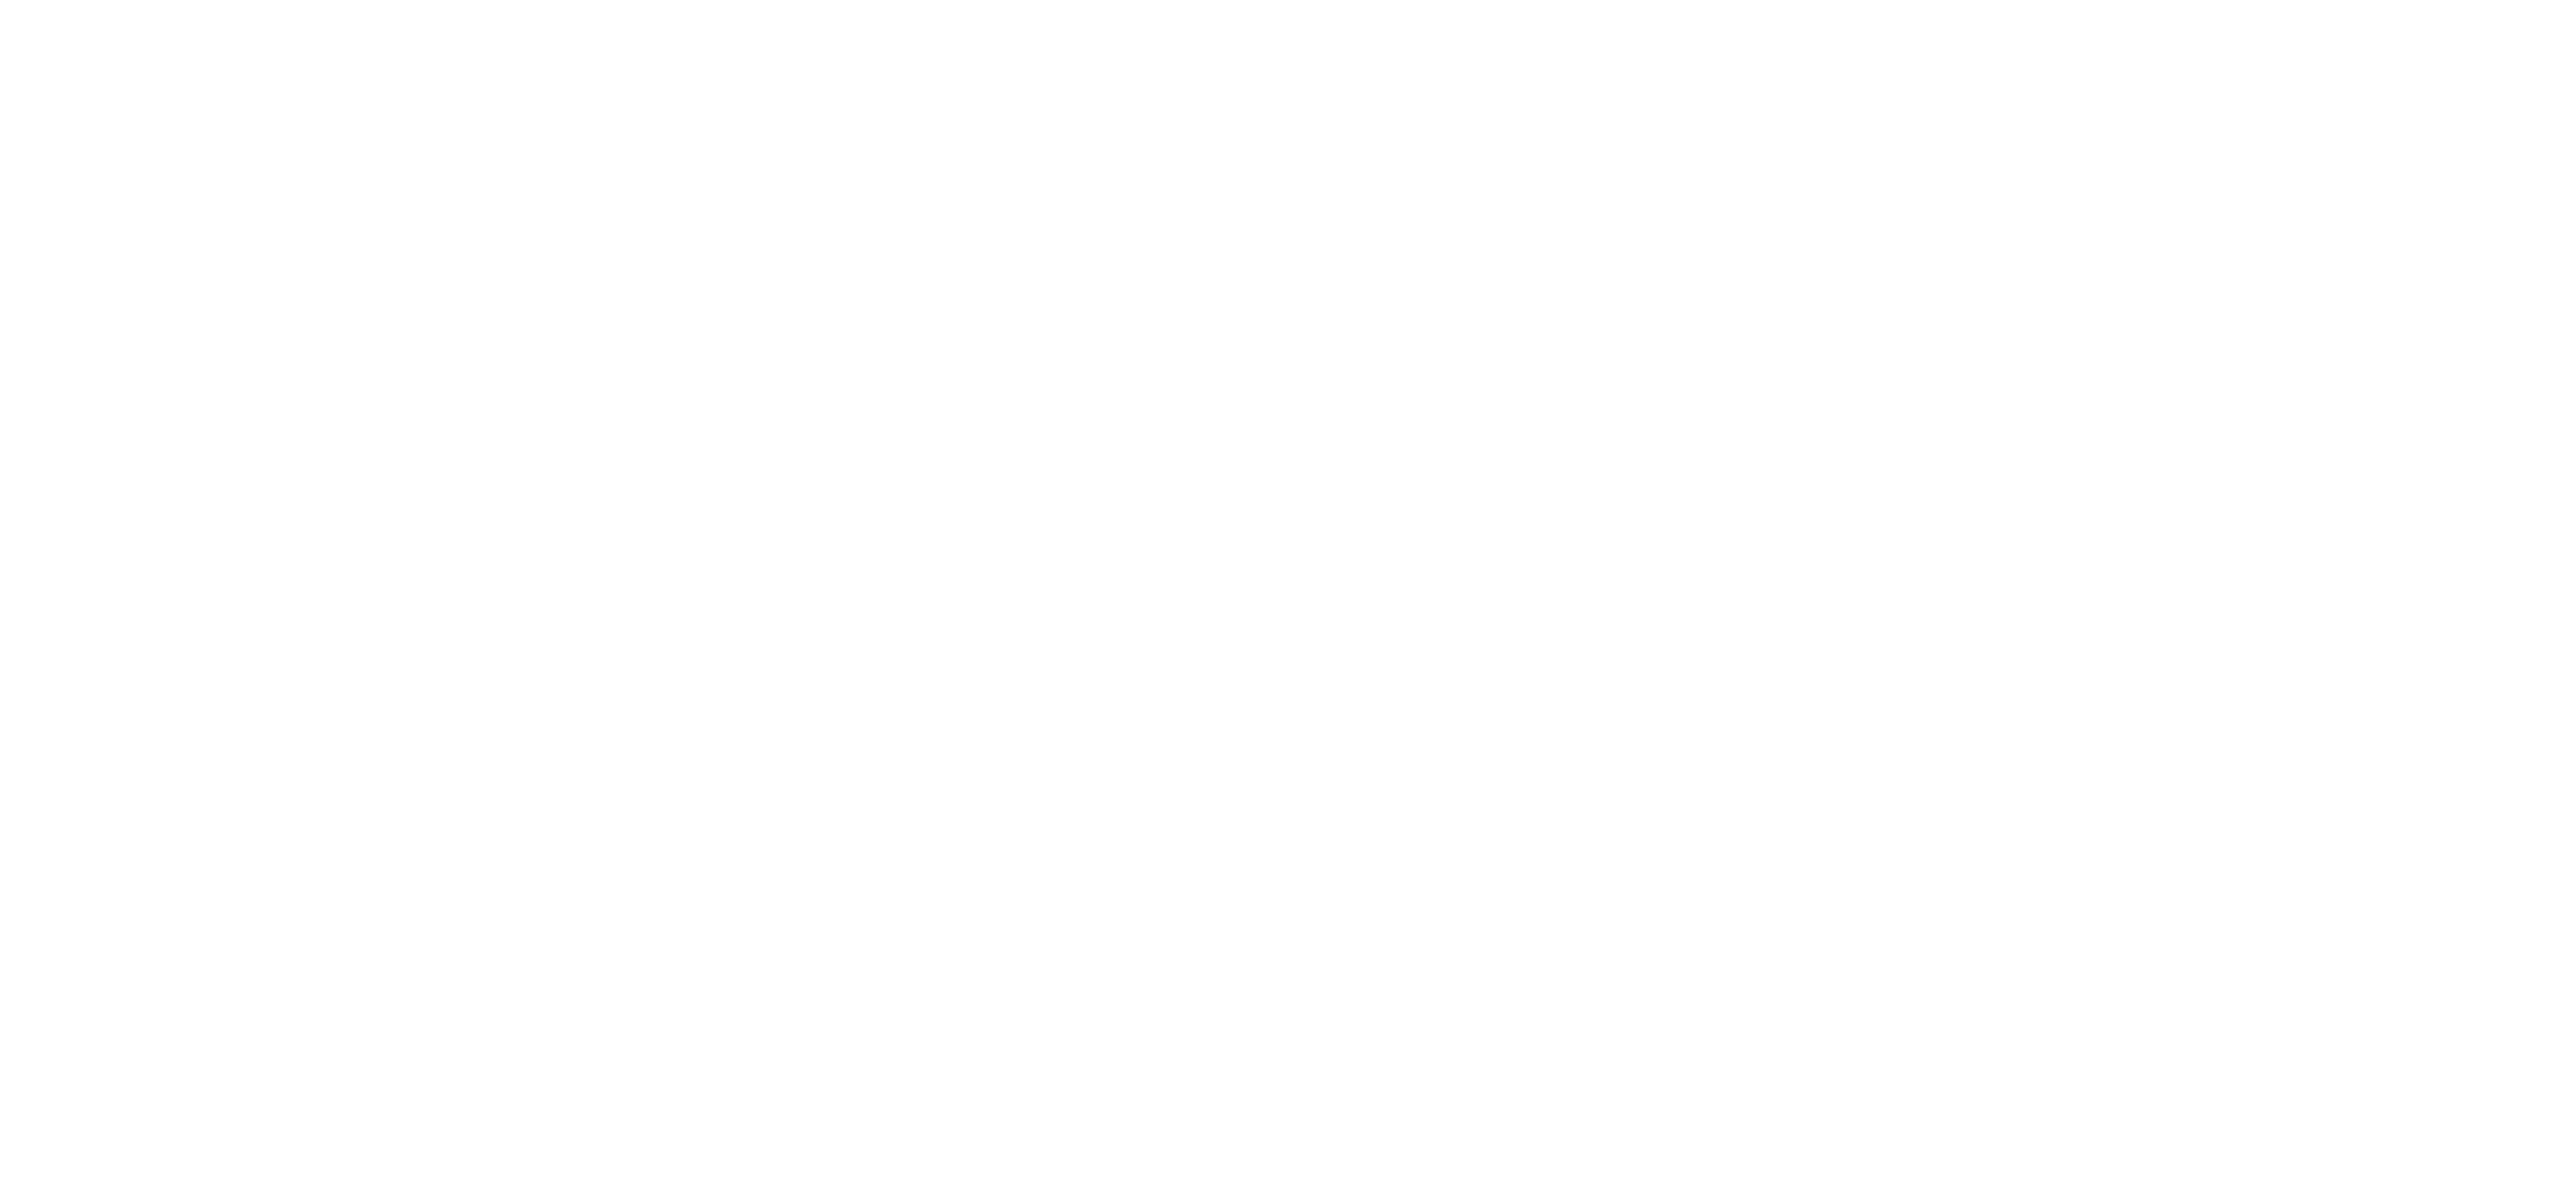 Academy for Ecological Transition